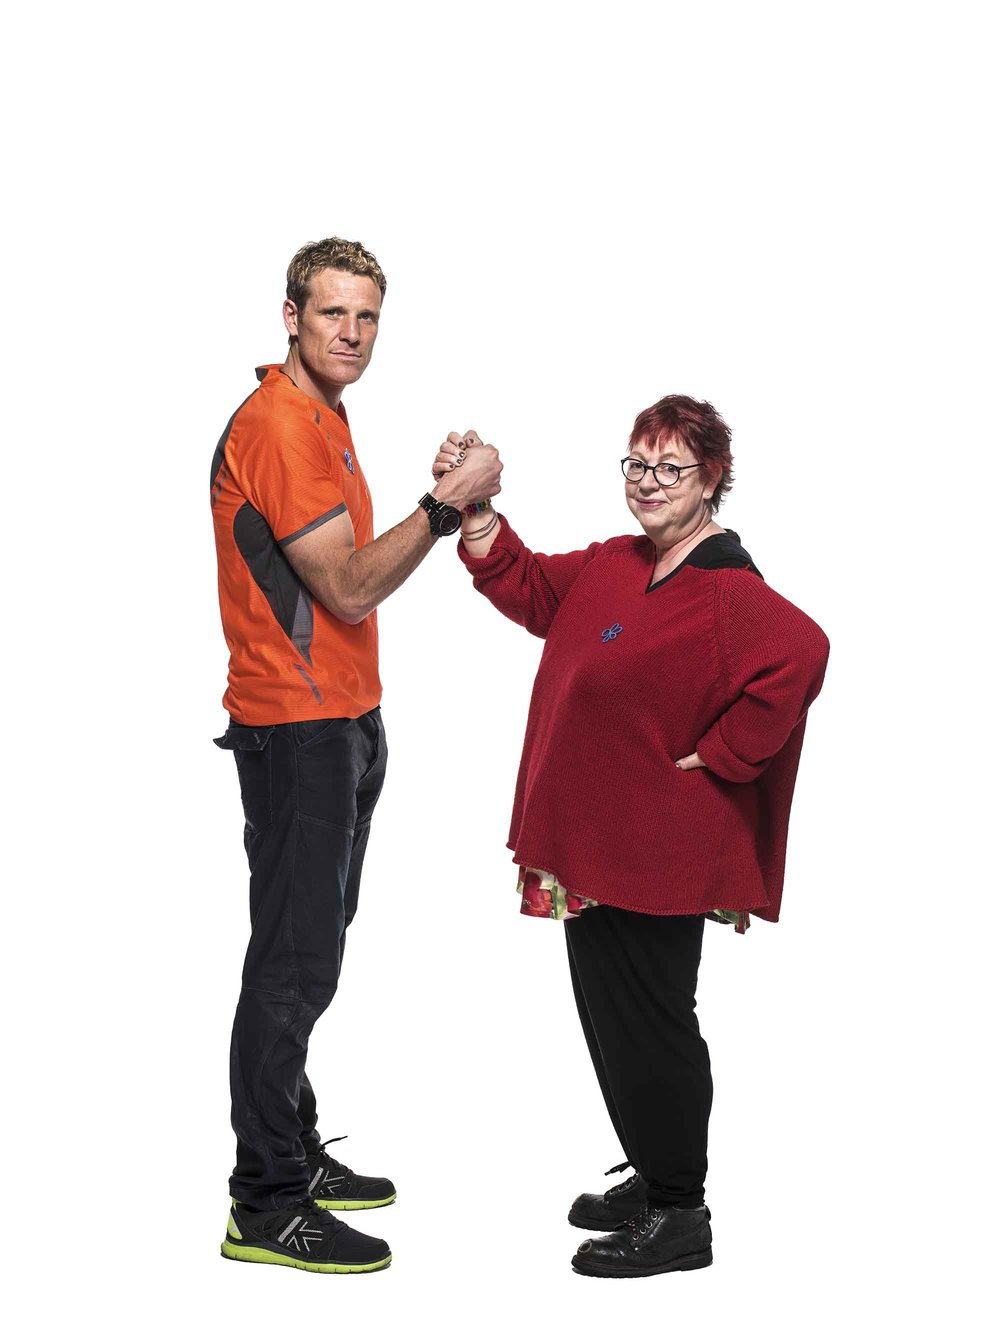 Jo Brand and James Cracknell are backing the campaign